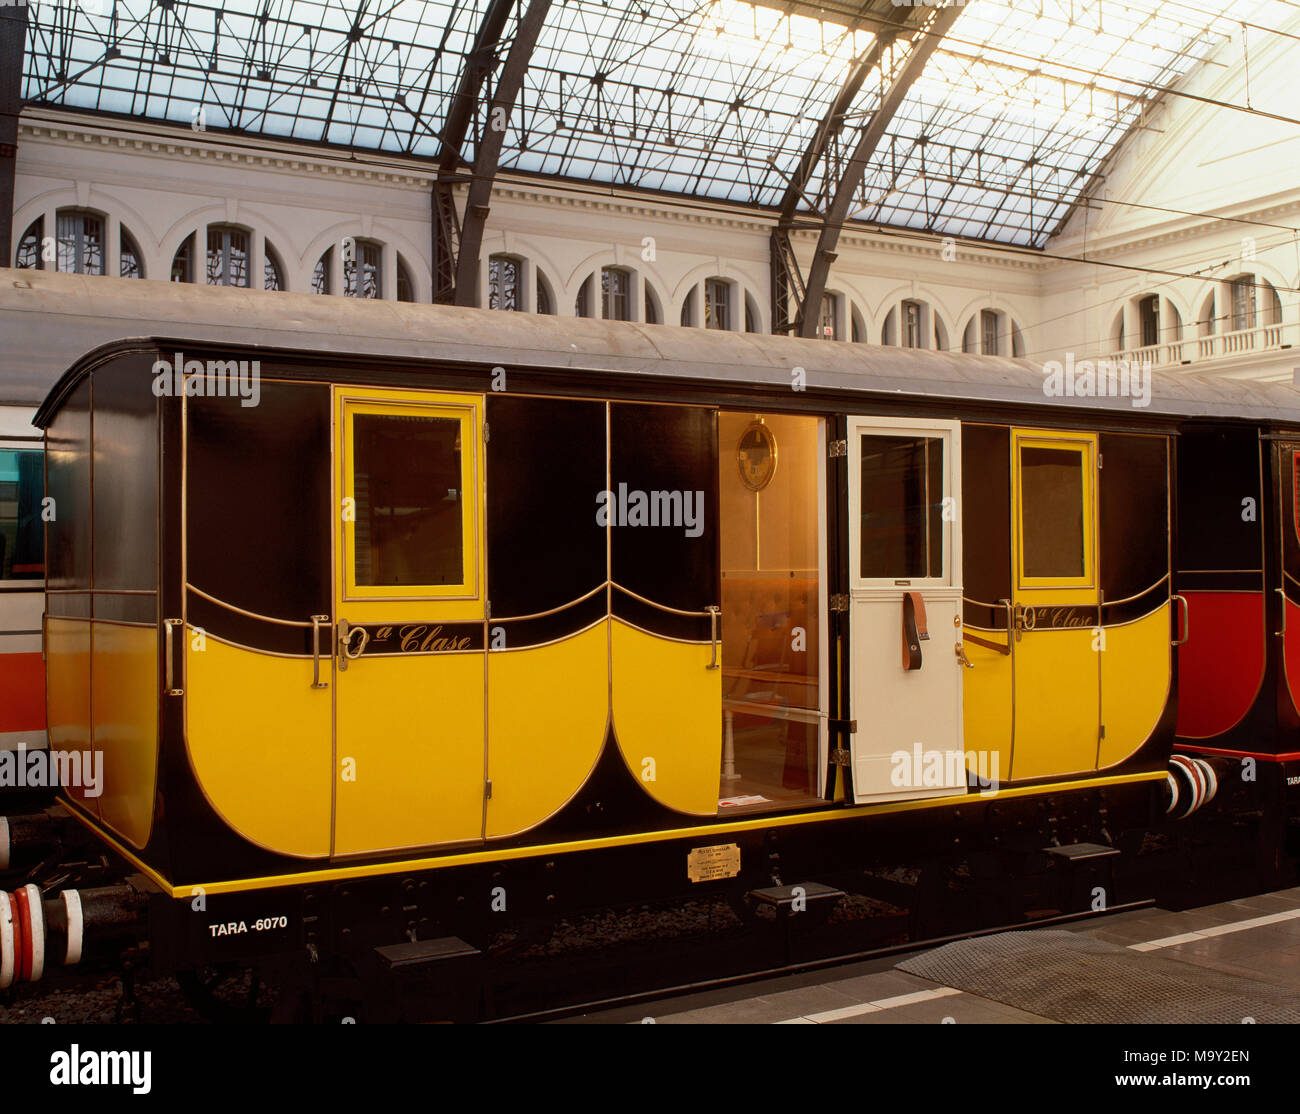 Railway of the short line from Barcelona to Mataro, 1848. Wagon, Second Class. Replica for the Exhibition '150 years of railroad in Spain' (1998-1999), held in France Station, Barcelona, Catalonia, Spain. - Stock Image